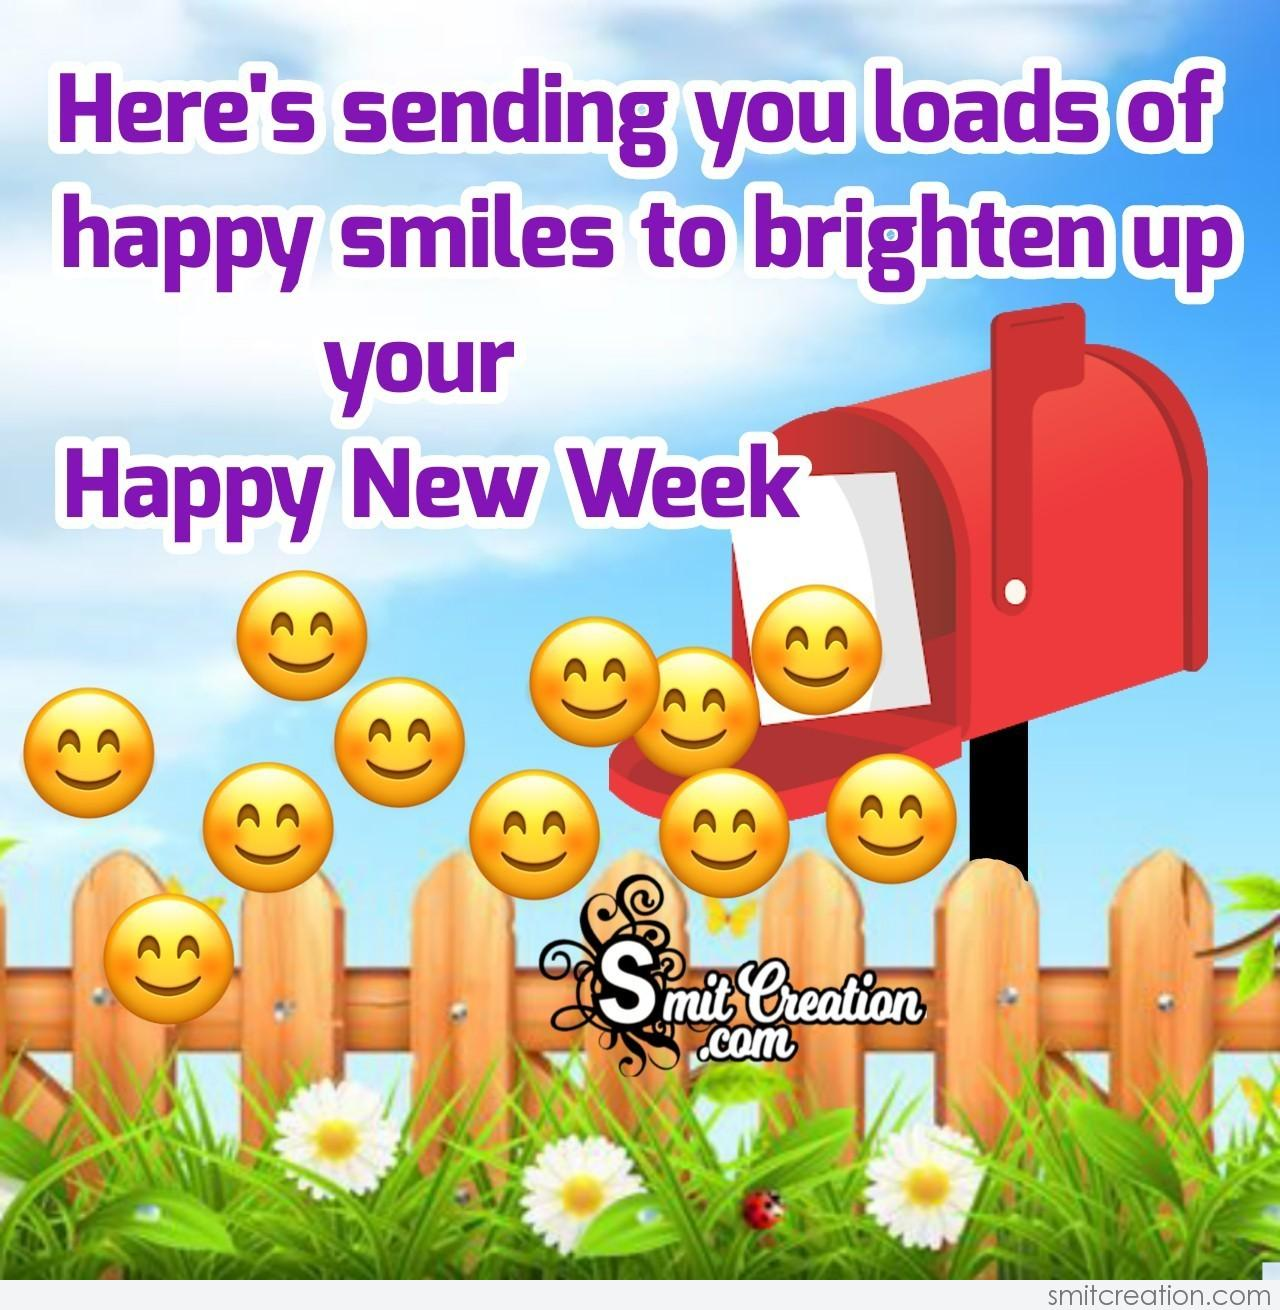 New Week Quotes Wishes Pictures and Graphics - SmitCreation.com